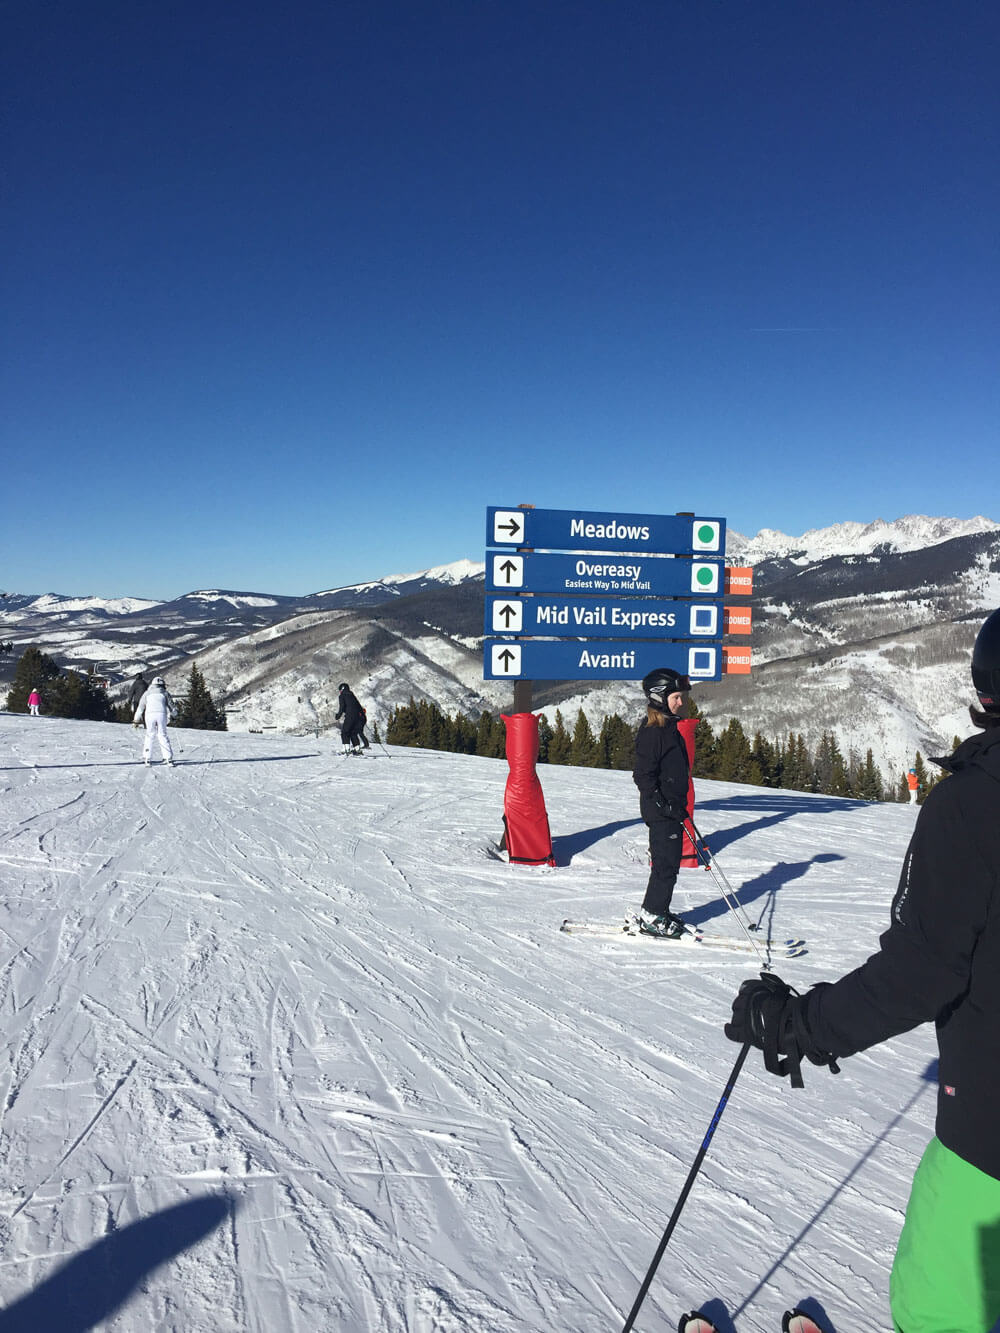 How to Make Sure Your Kids Are Happy Skiers - Vail Over Easy